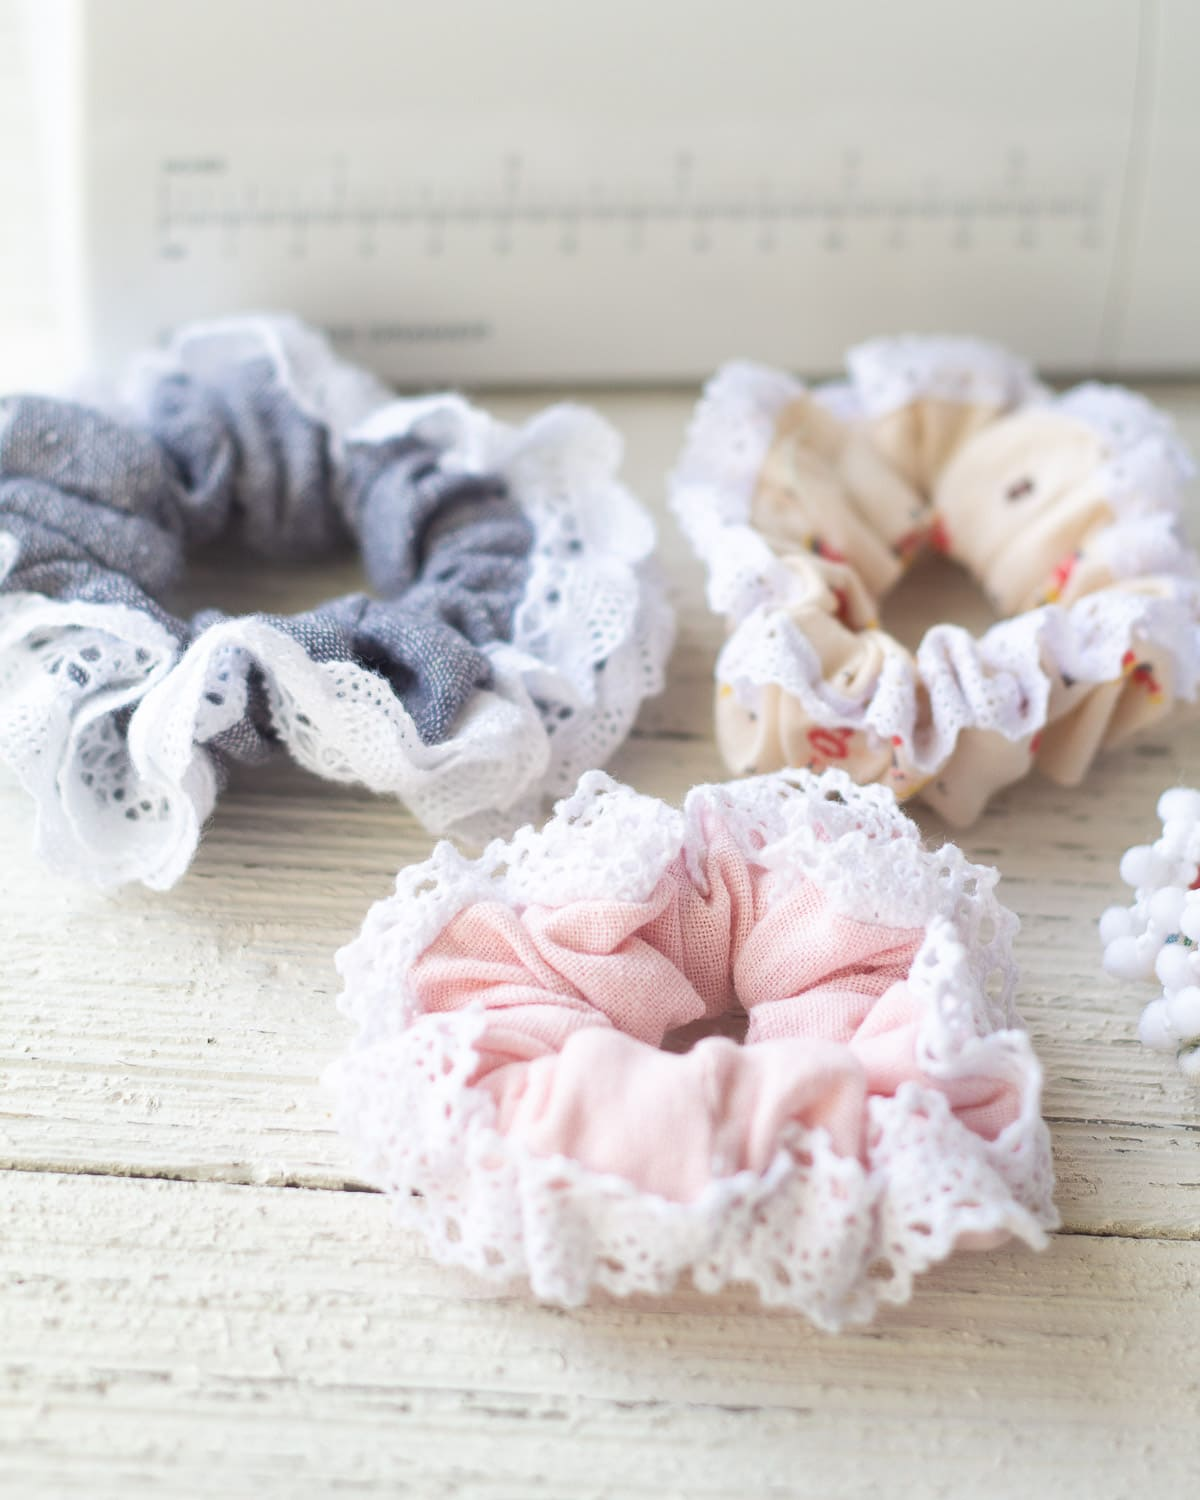 Three lace-trimmed scrunchies on a wooden surface.